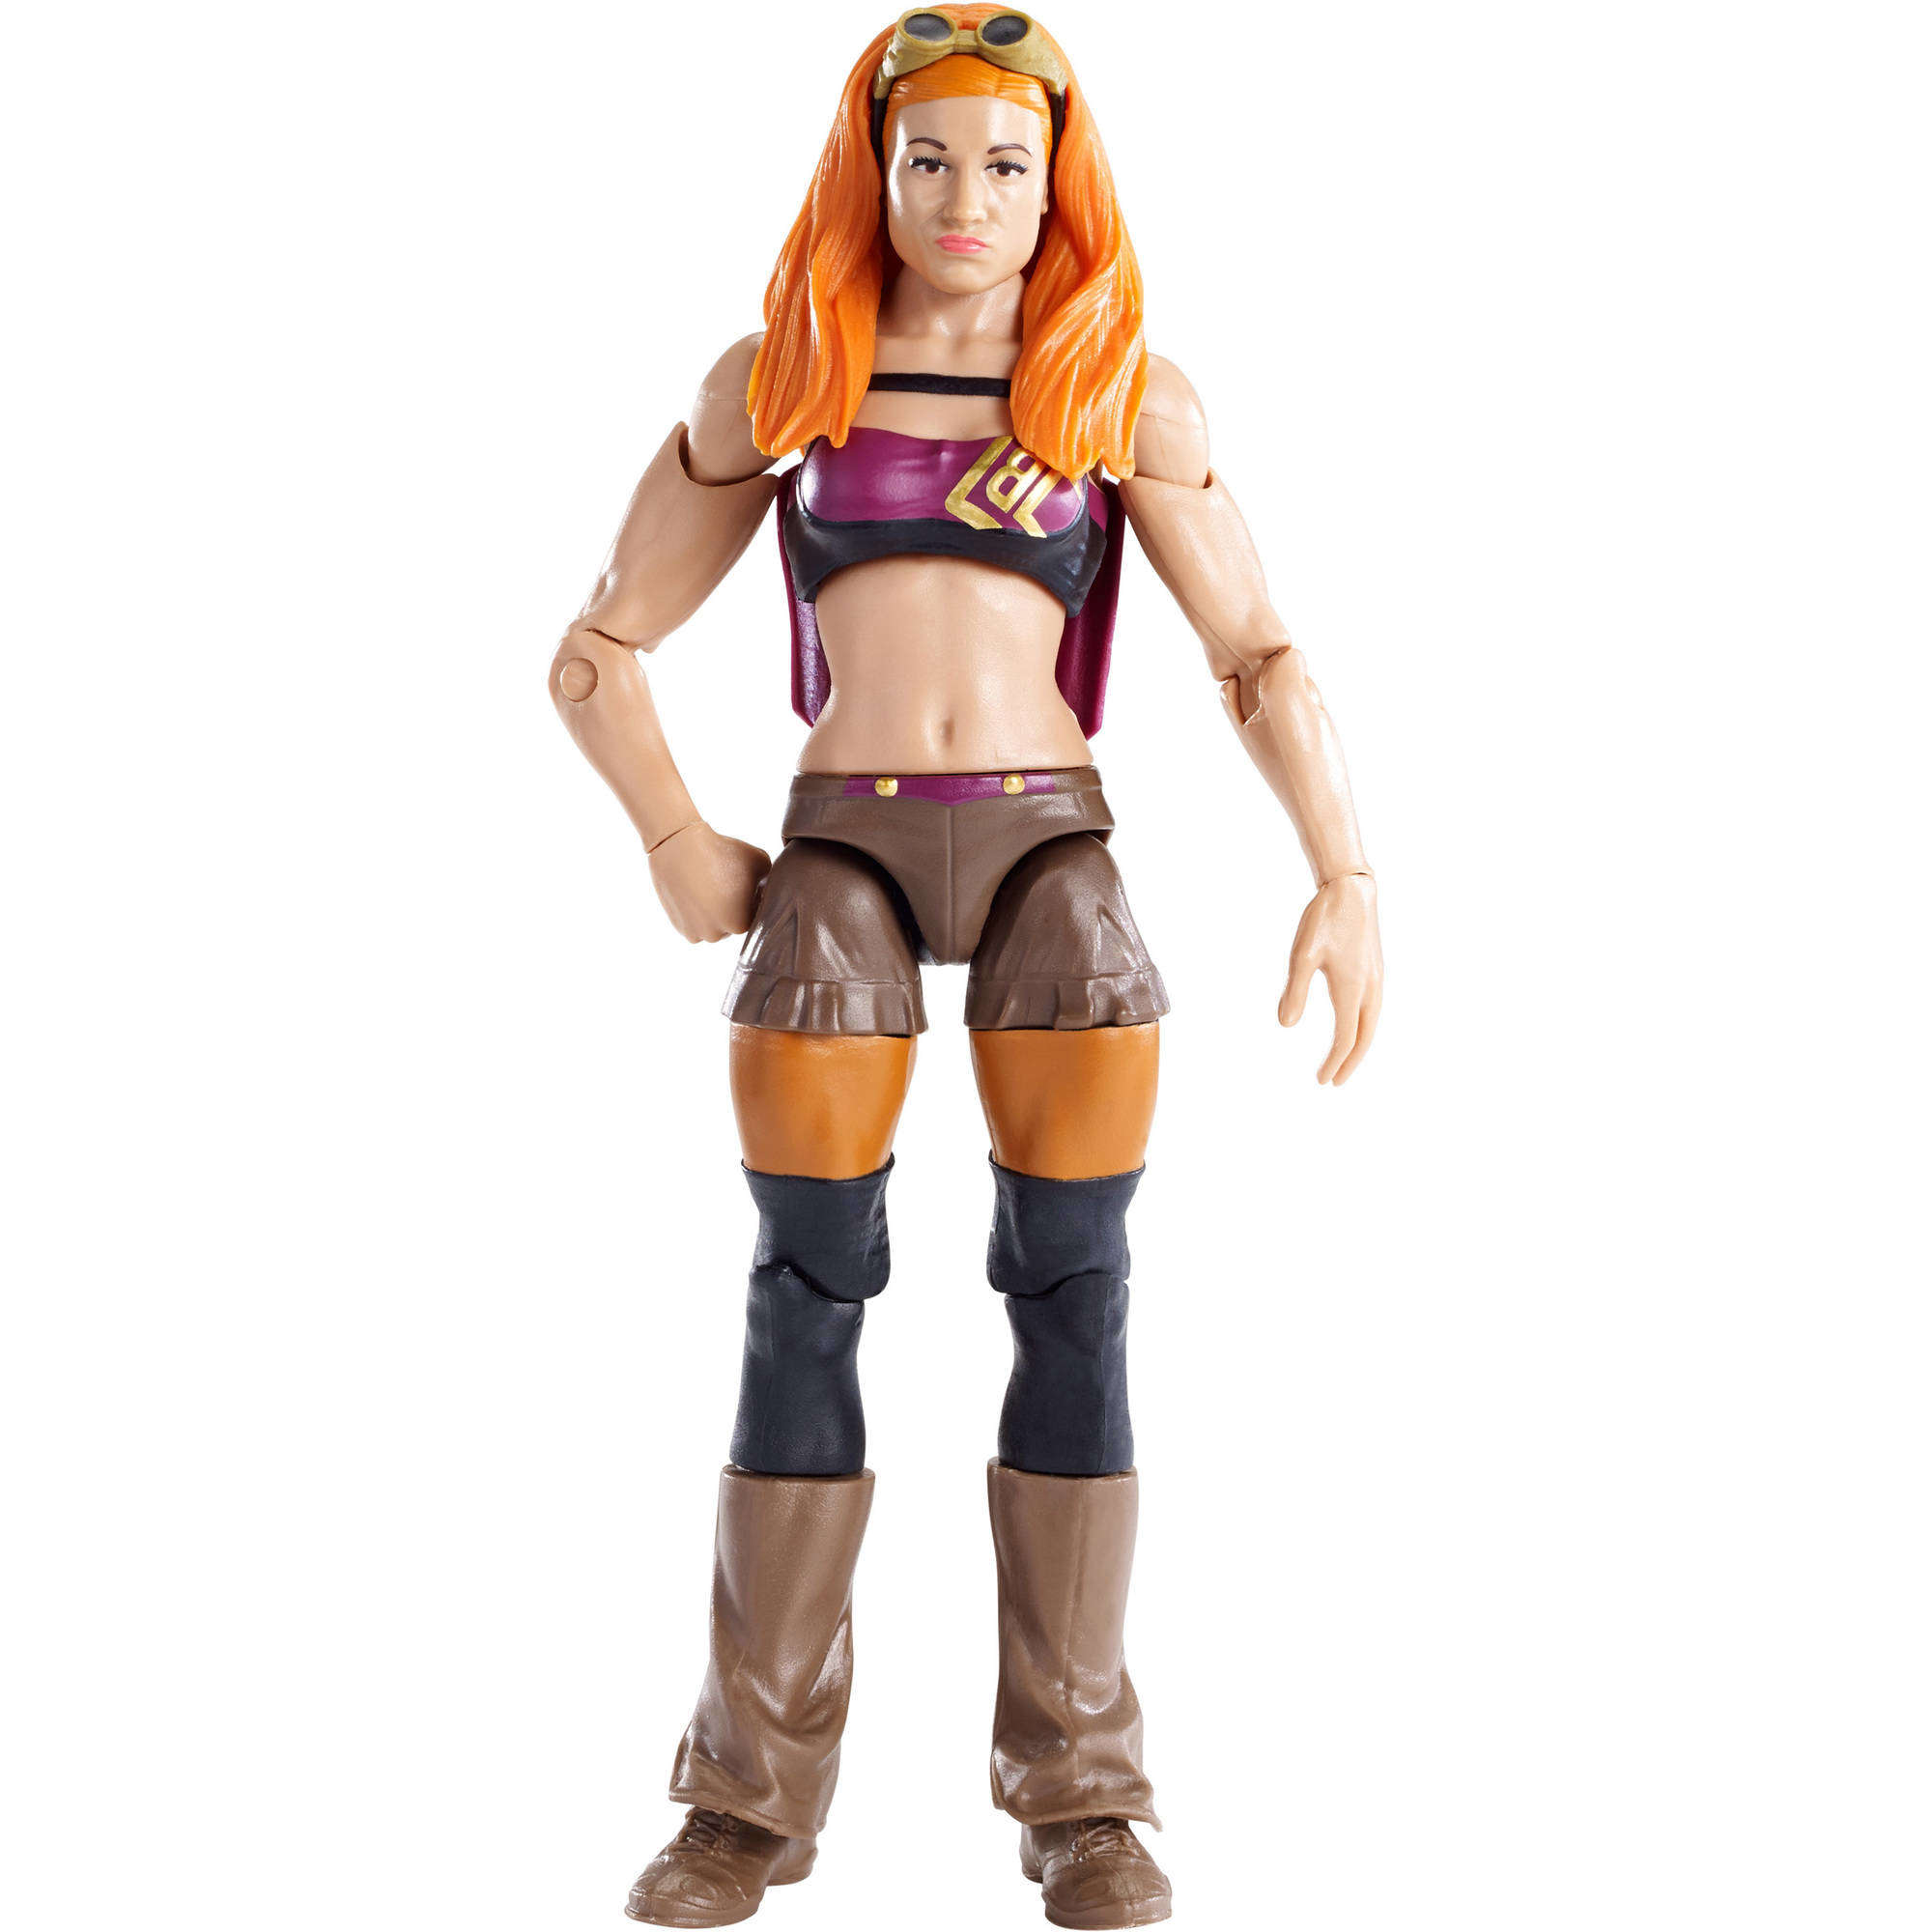 """WWE Becky Lynch Posing Action Figure Superstar Scale 6"""""""